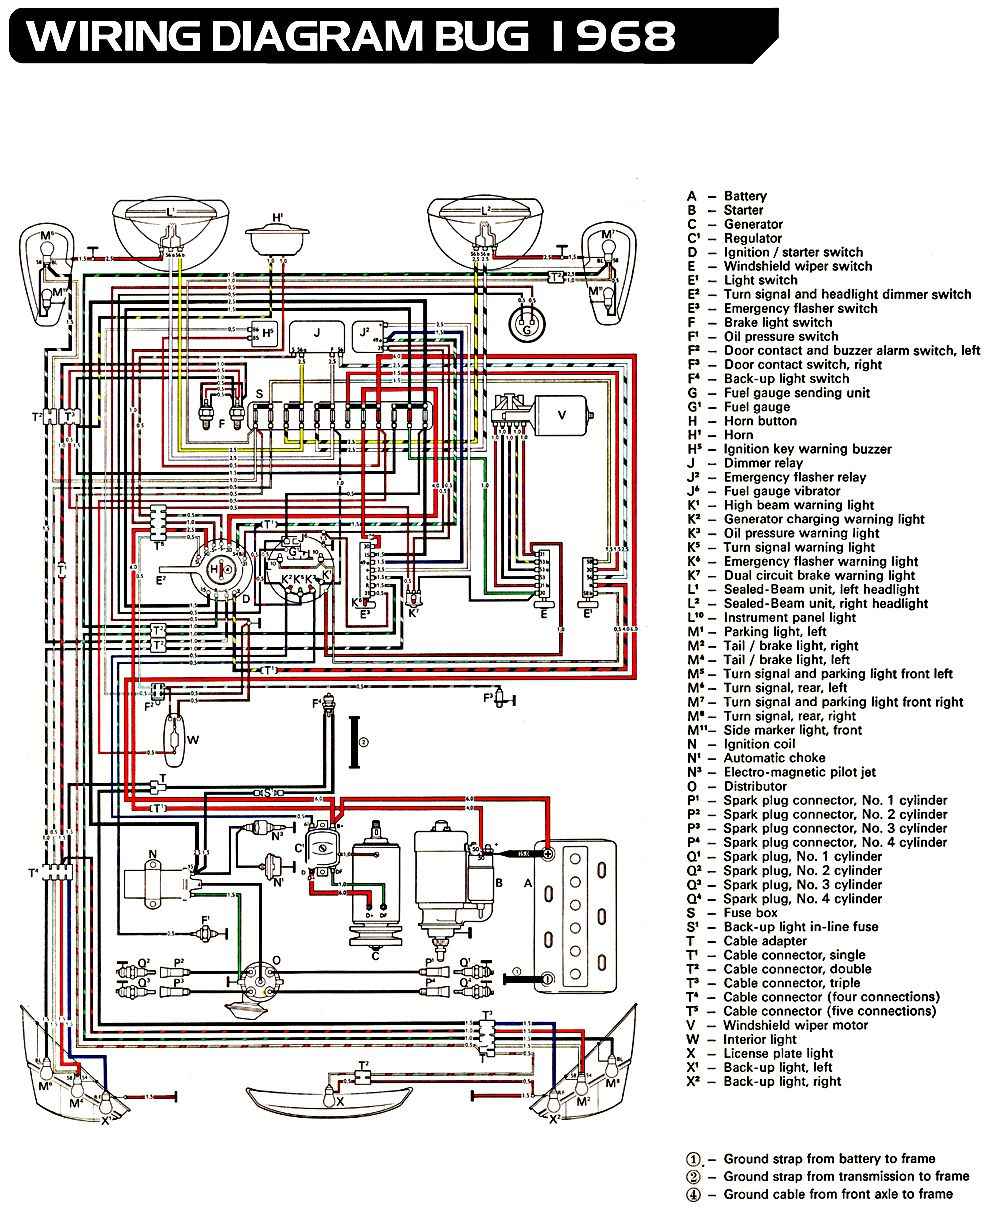 3a1908112d3826270ed5e3be362292bf vw bug ignition wiring diagram 73 vw wiring diagram free 1968 vw bug headlight wiring diagram at soozxer.org